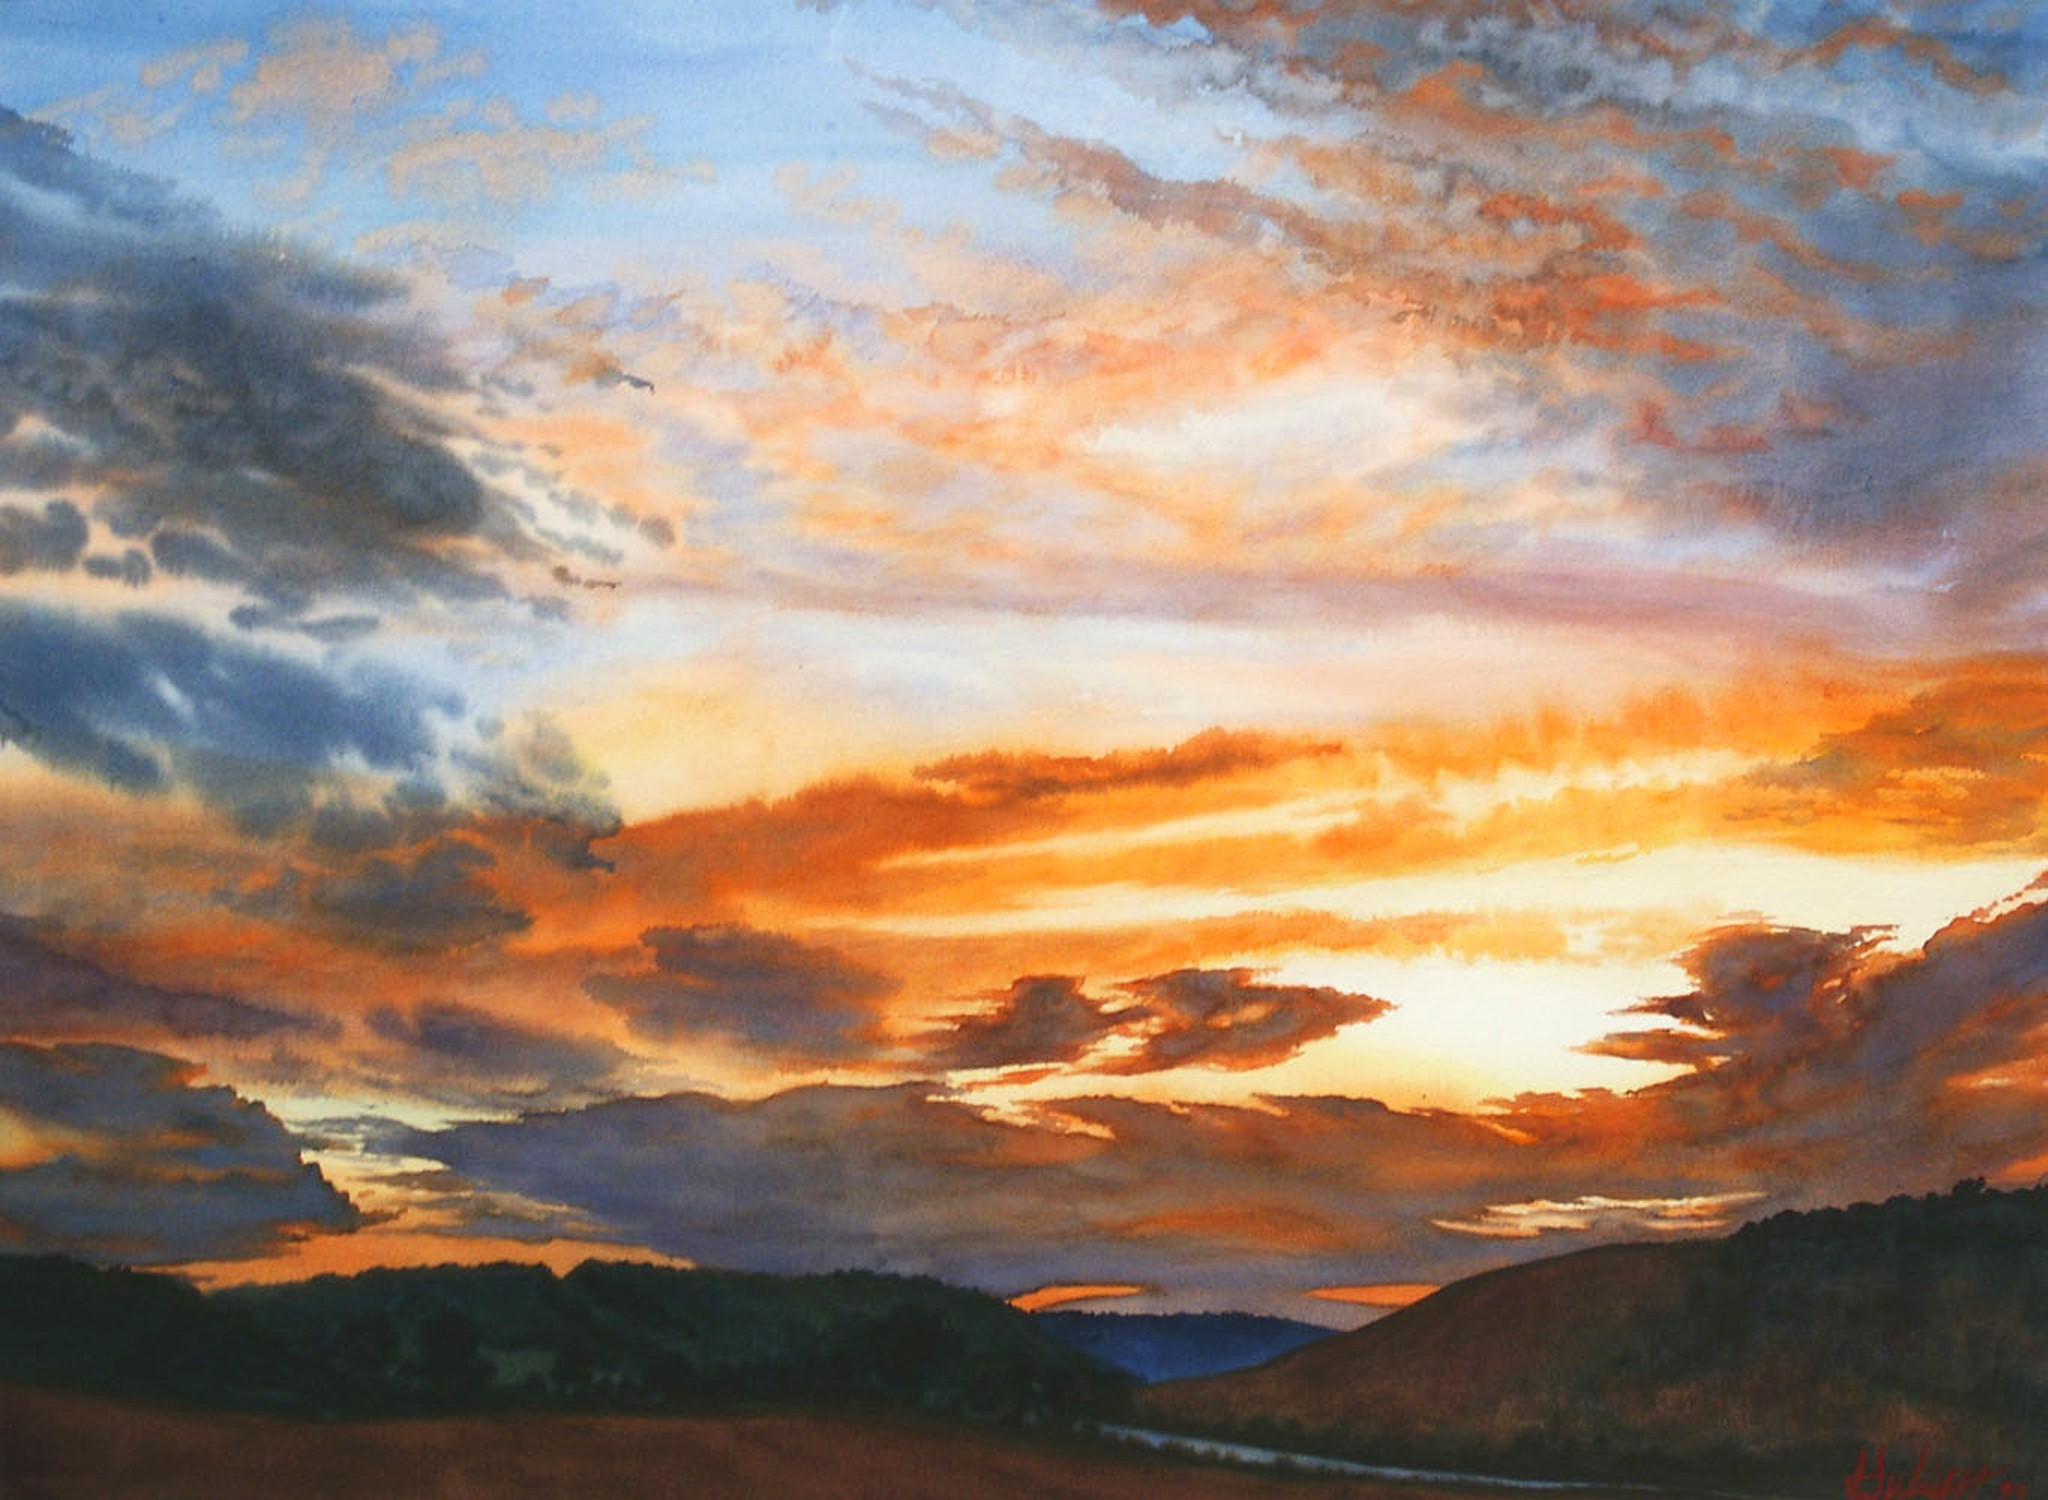 [painting: Golden Moment, painting by John Hulsey; copyright 2005. Used with permission.]